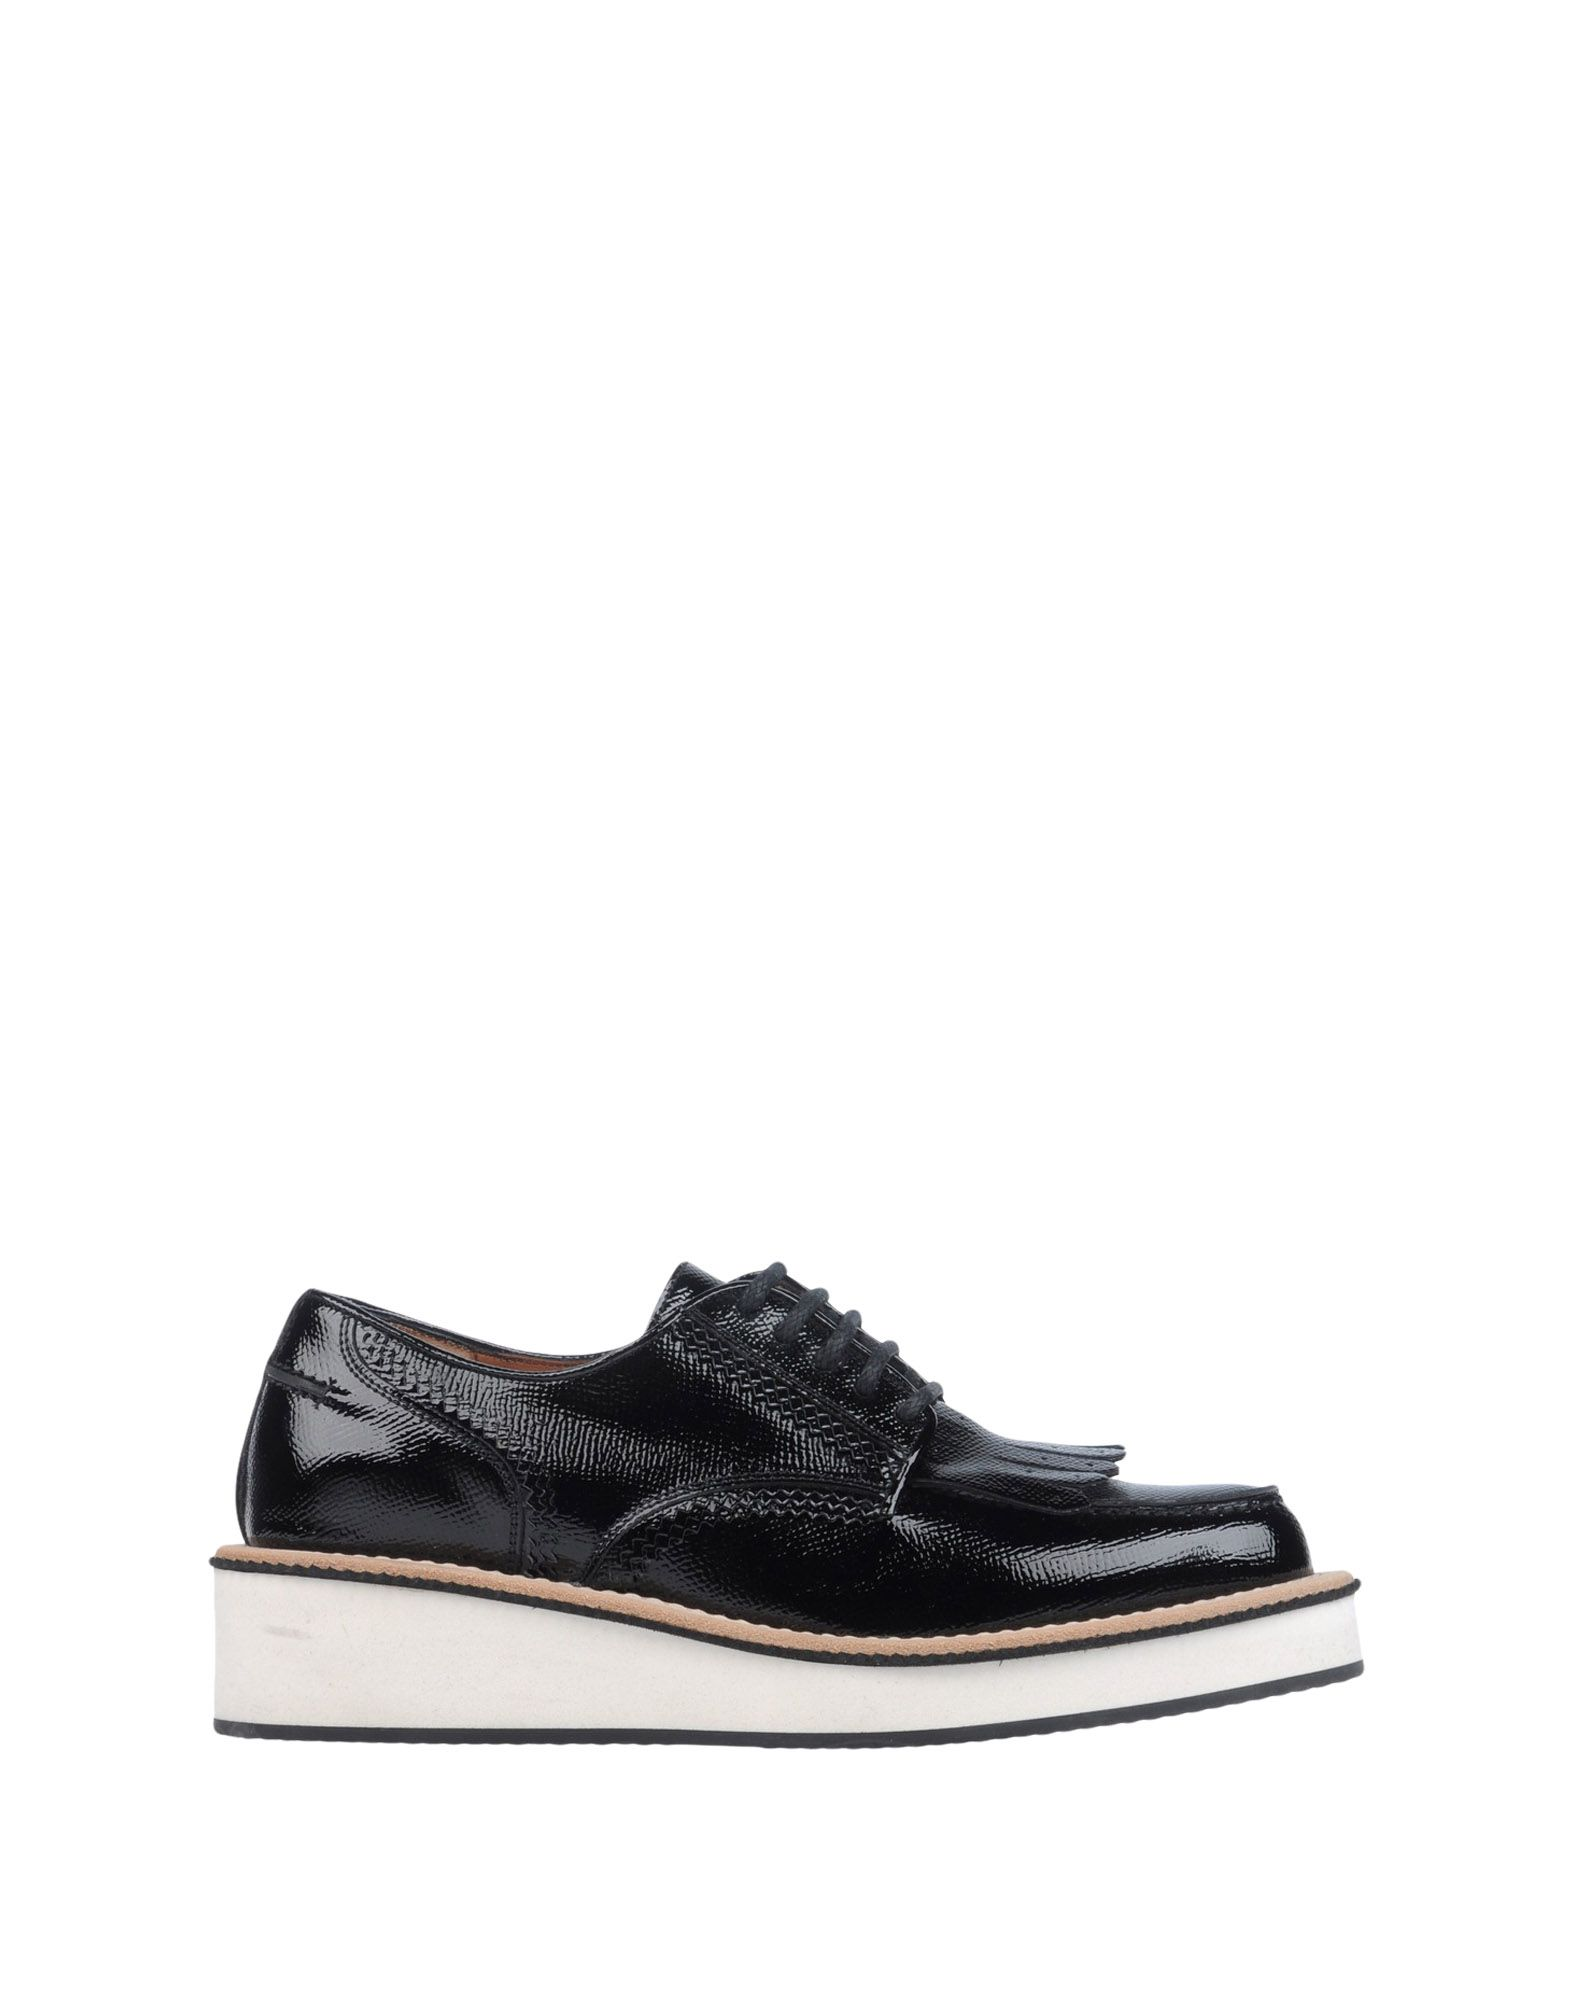 Chaussures À Lacets Givenchy Femme - Chaussures À Lacets Givenchy sur